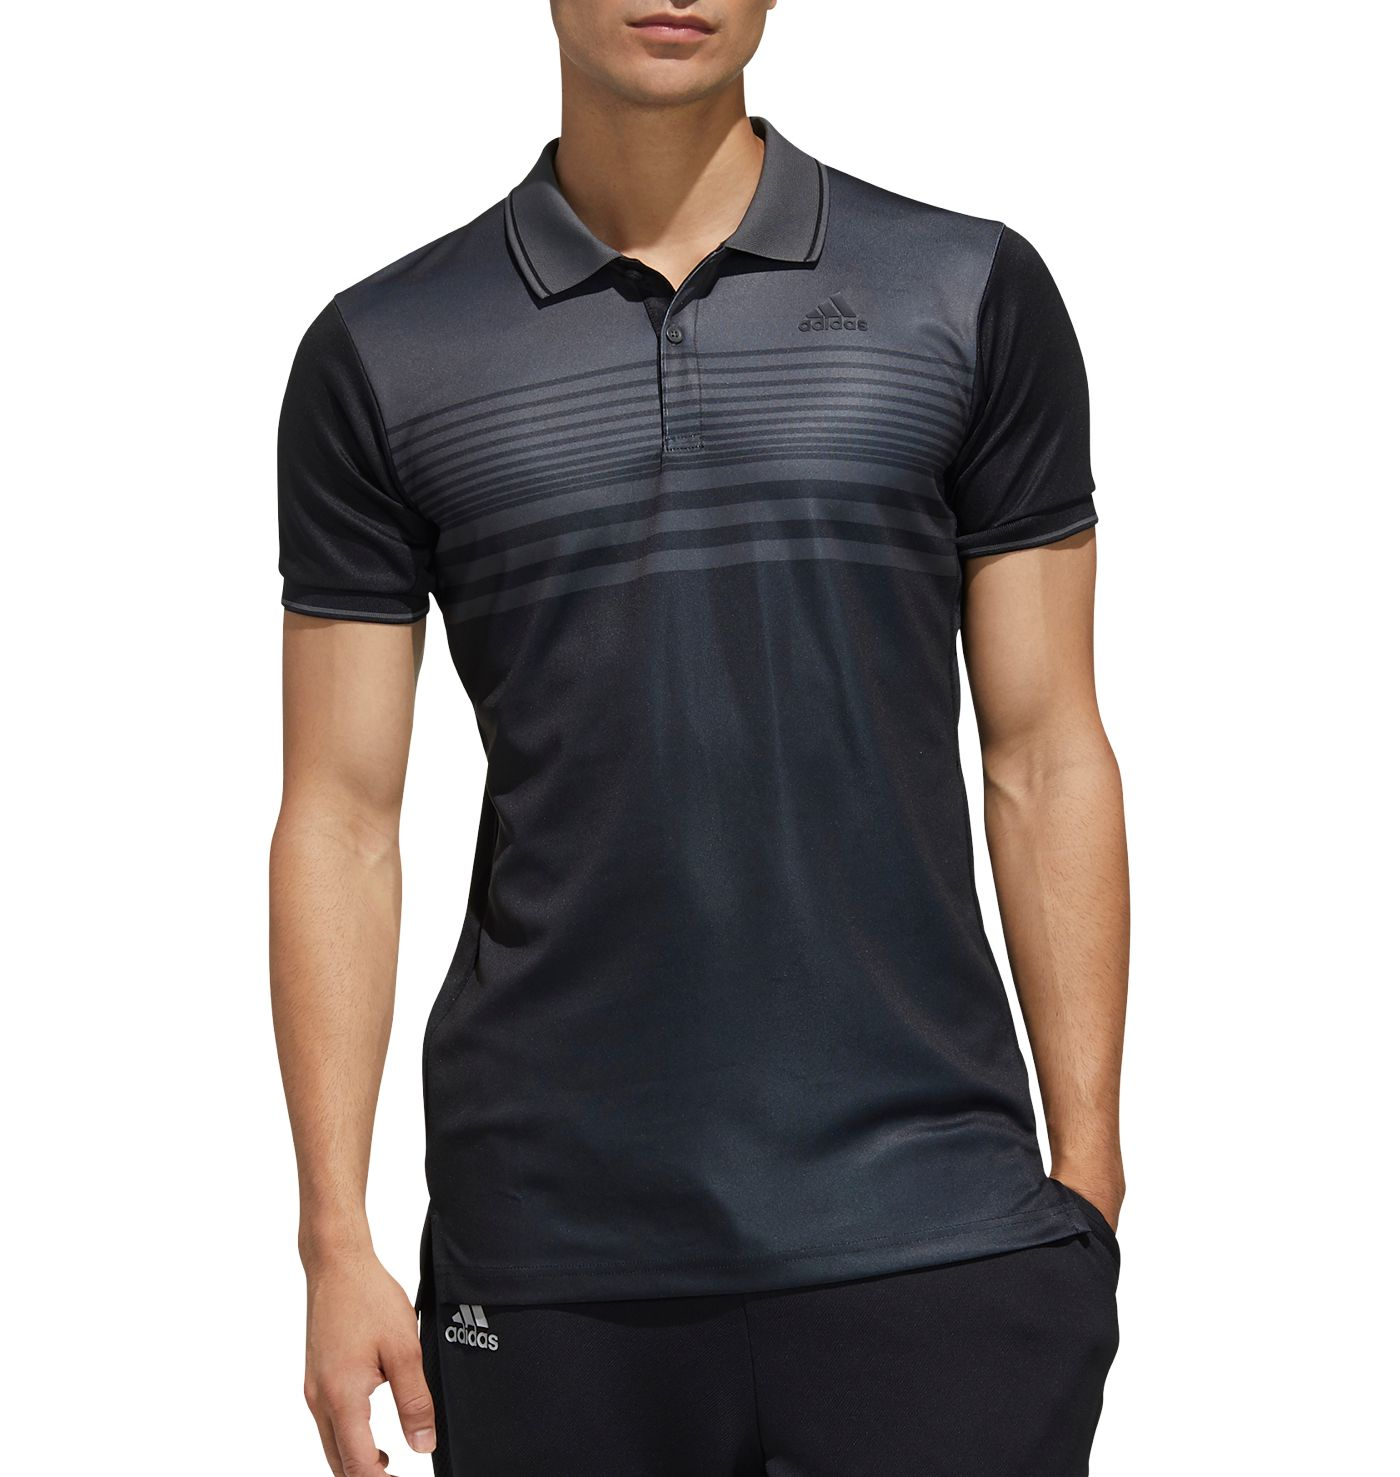 adidas Men's Club CCT Tennis Polo